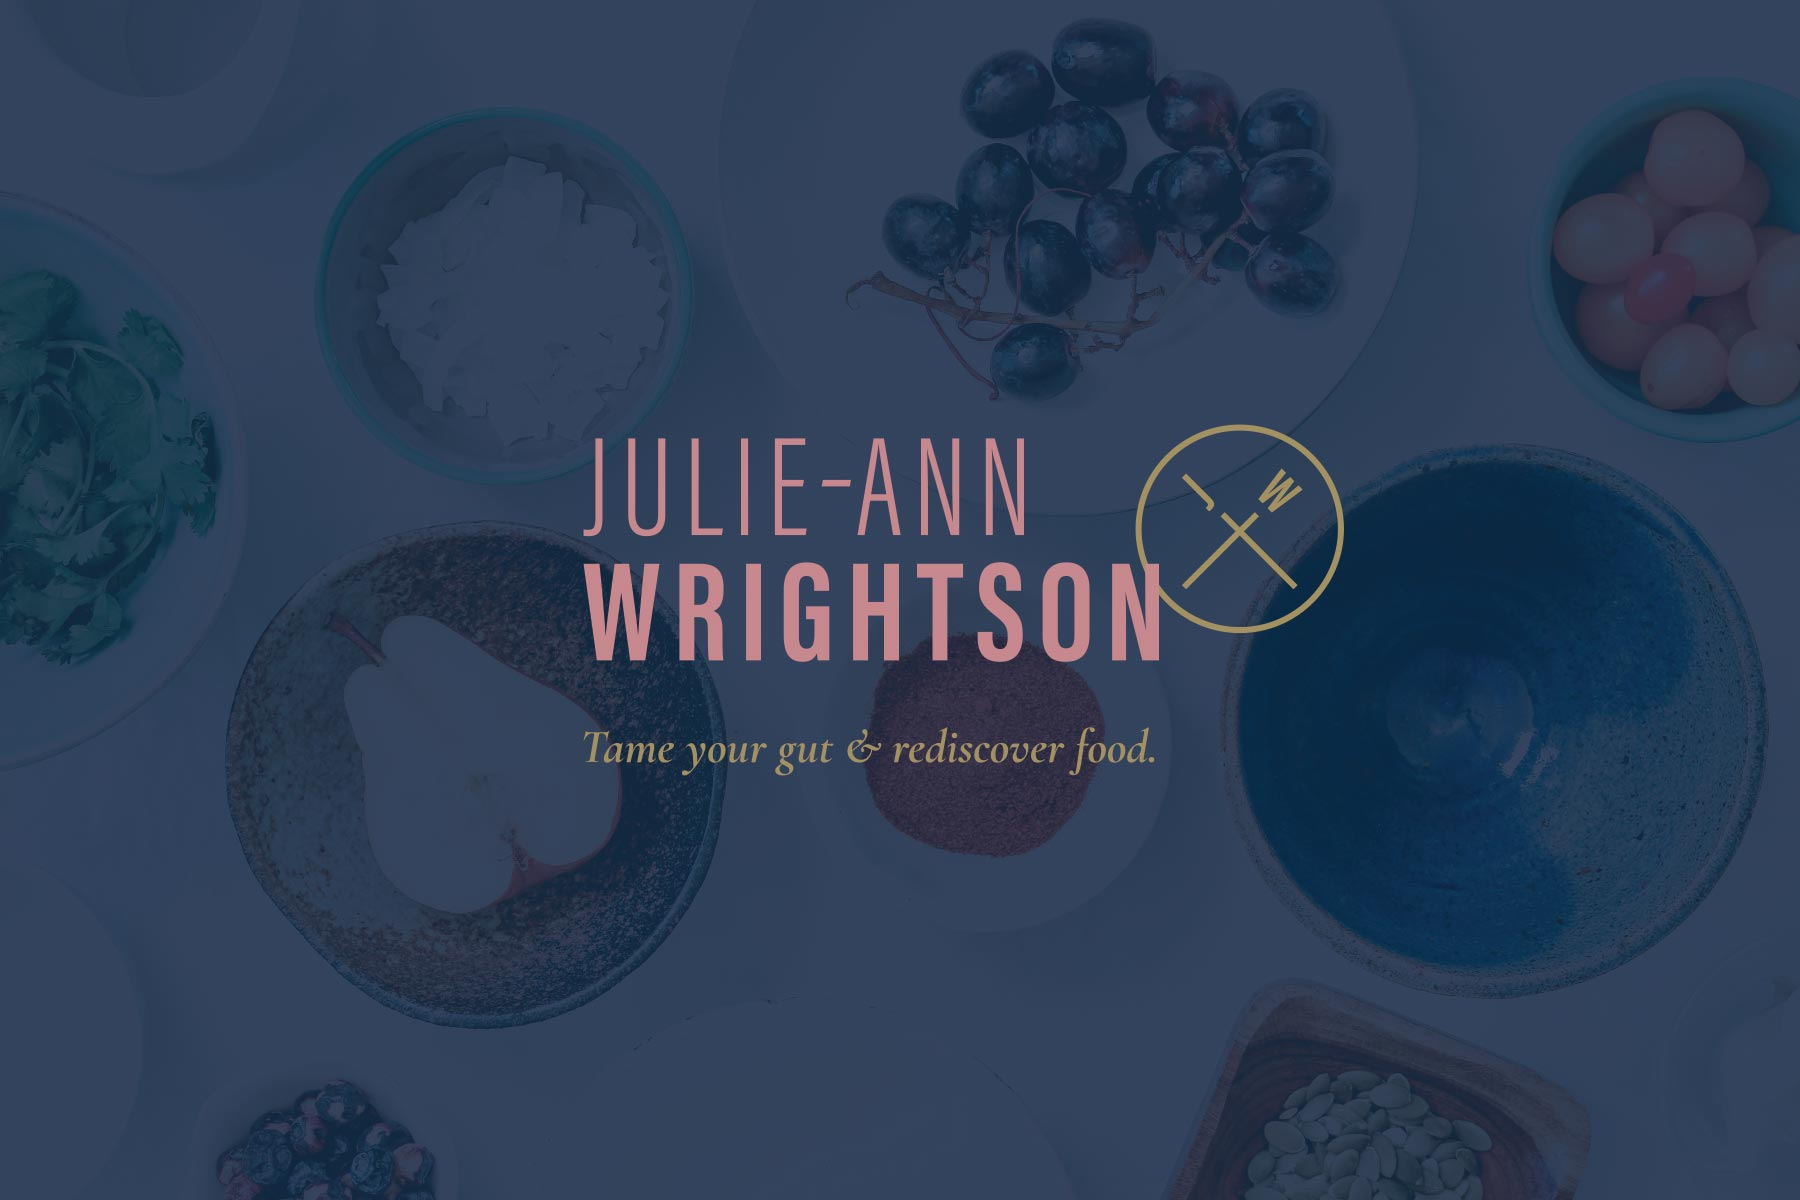 Julie-Ann Wrightson author logo, designed by Lisa Furze